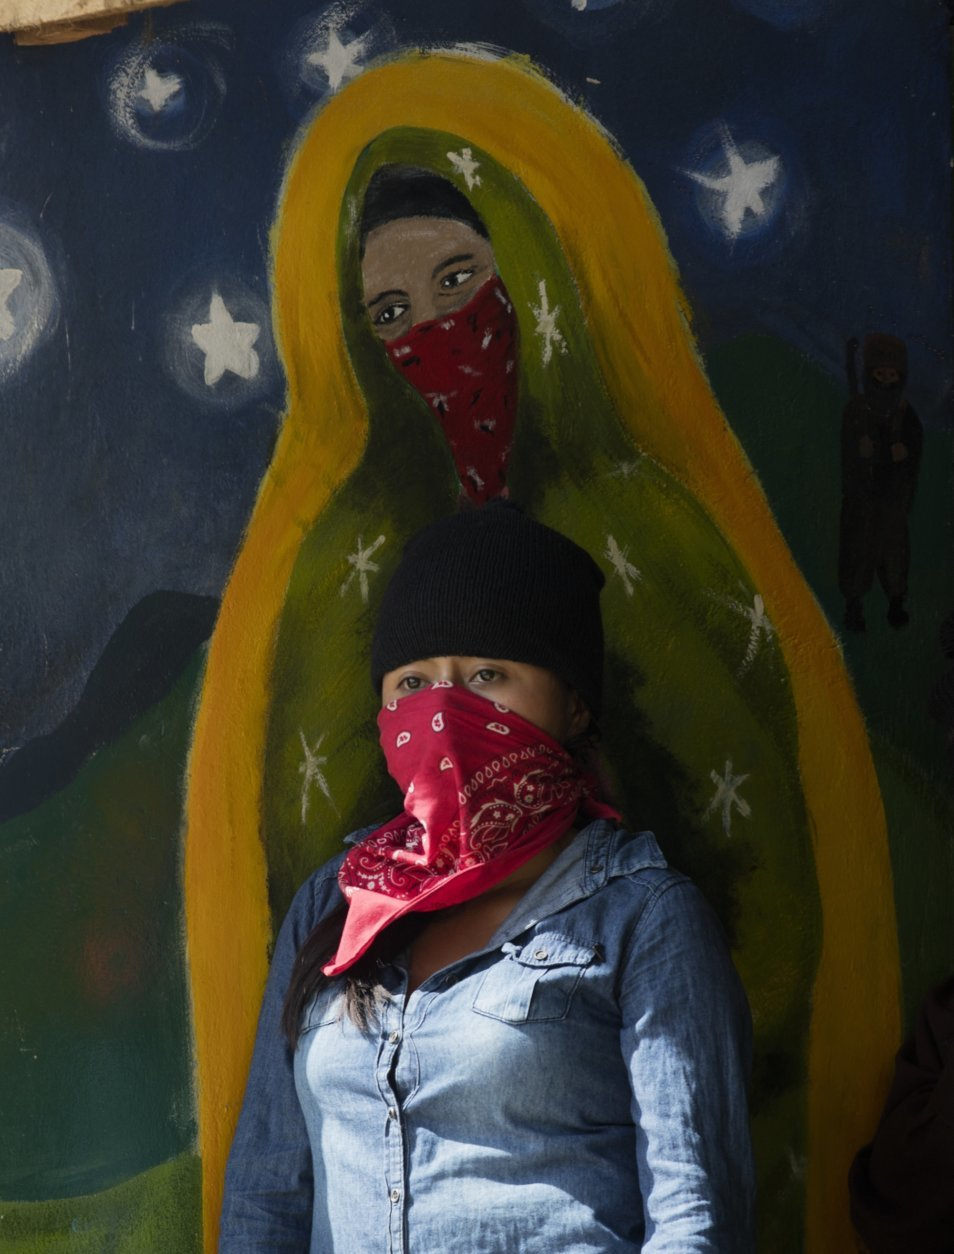 In this Tuesday, Jan. 1, 2019 photo, a masked, female member of the Zapatista National Liberation Army, EZLN, stands by a mural depicting a masked version of the Virgin of Guadalupe, during an event marking the 25th anniversary of the Zapatista uprising in La Realidad, Chiapas, Mexico. Mexico's leftist Zapatistas have continued their aggressive criticism of the country's new president, accusing Andres Manuel Lopez Obrador of dishonesty and vowing to confront him. (AP Photo/Eduardo Verdugo)